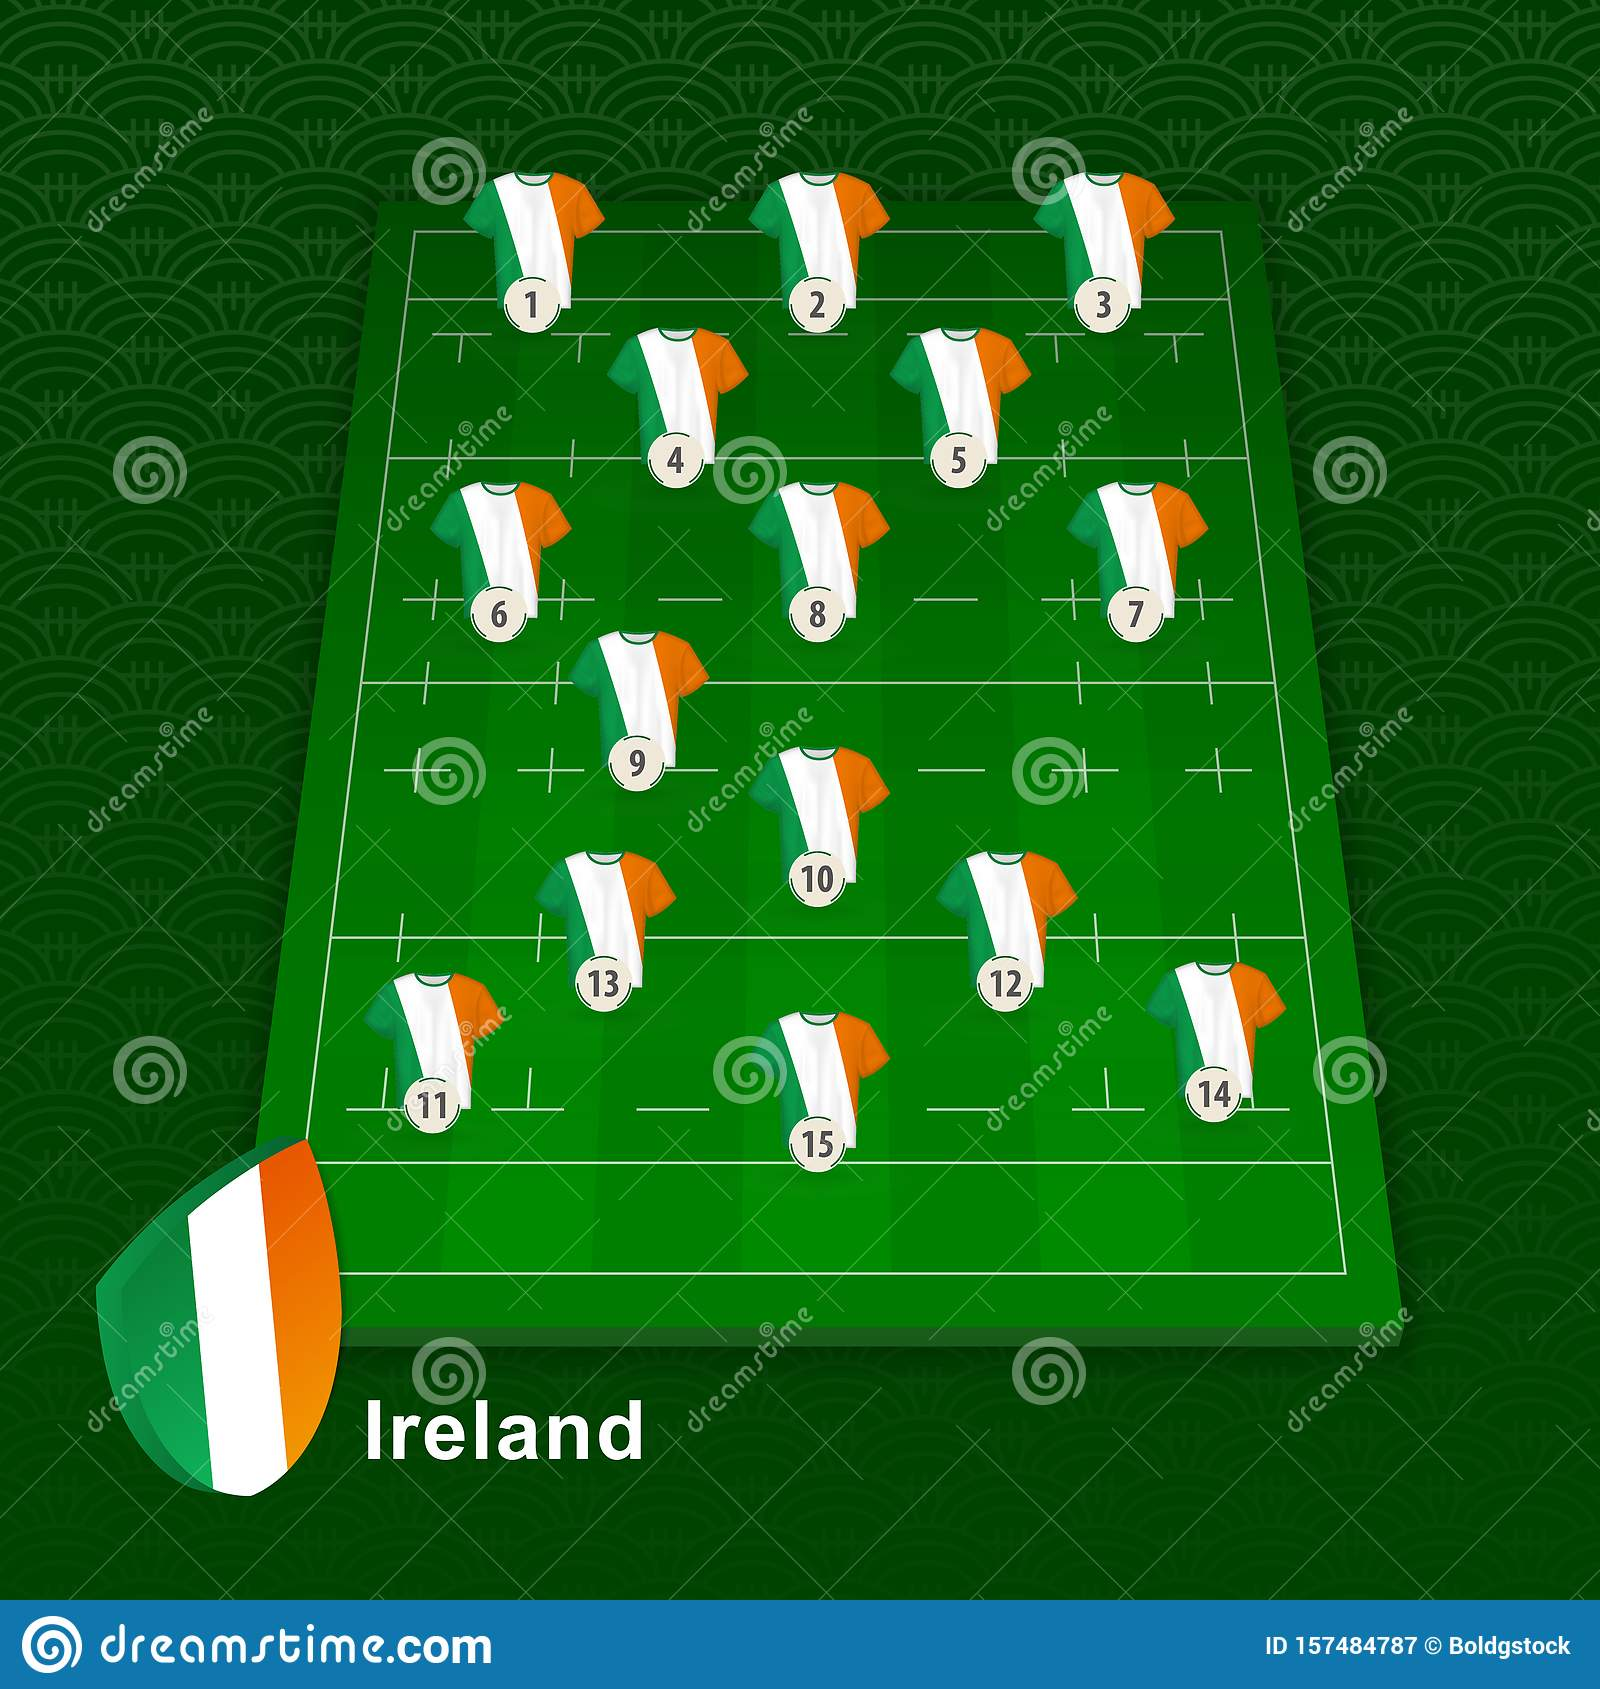 Ireland Rugby Team Player Position On Rugby Field Stock Vector Illustration Of Number Formation 157484787